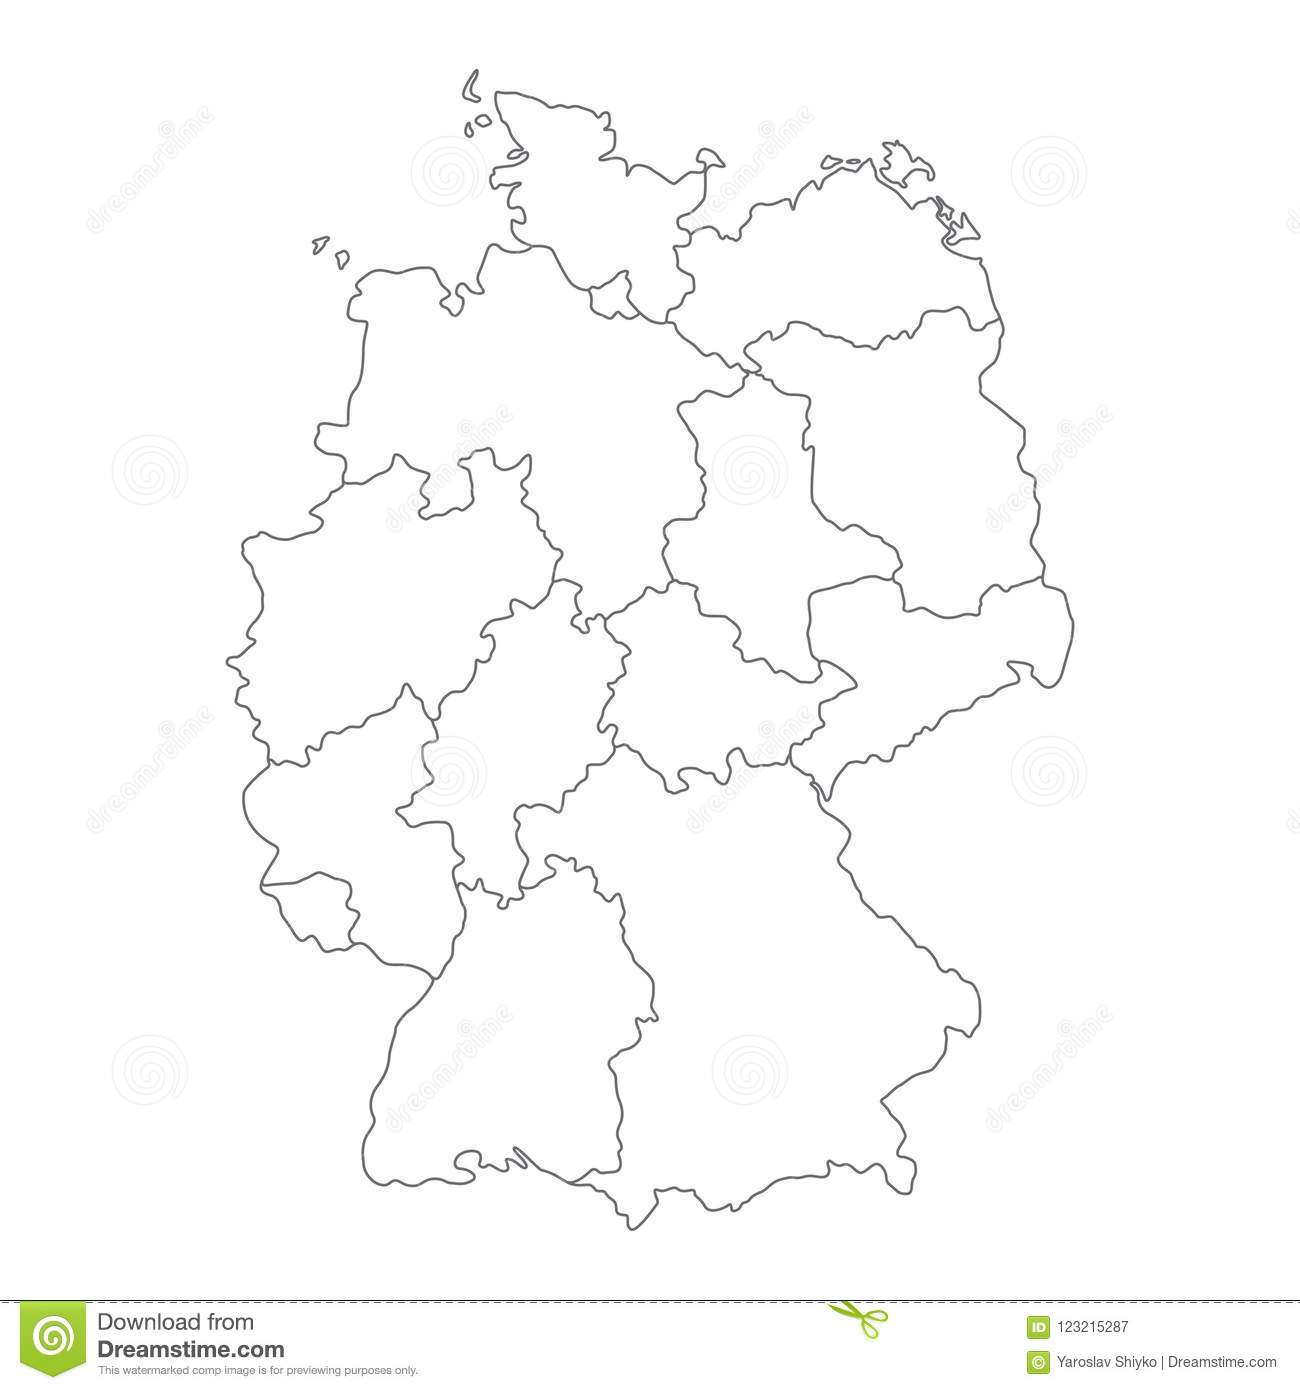 Map Of Germany Divided To Federal States And City-states. Simple ...